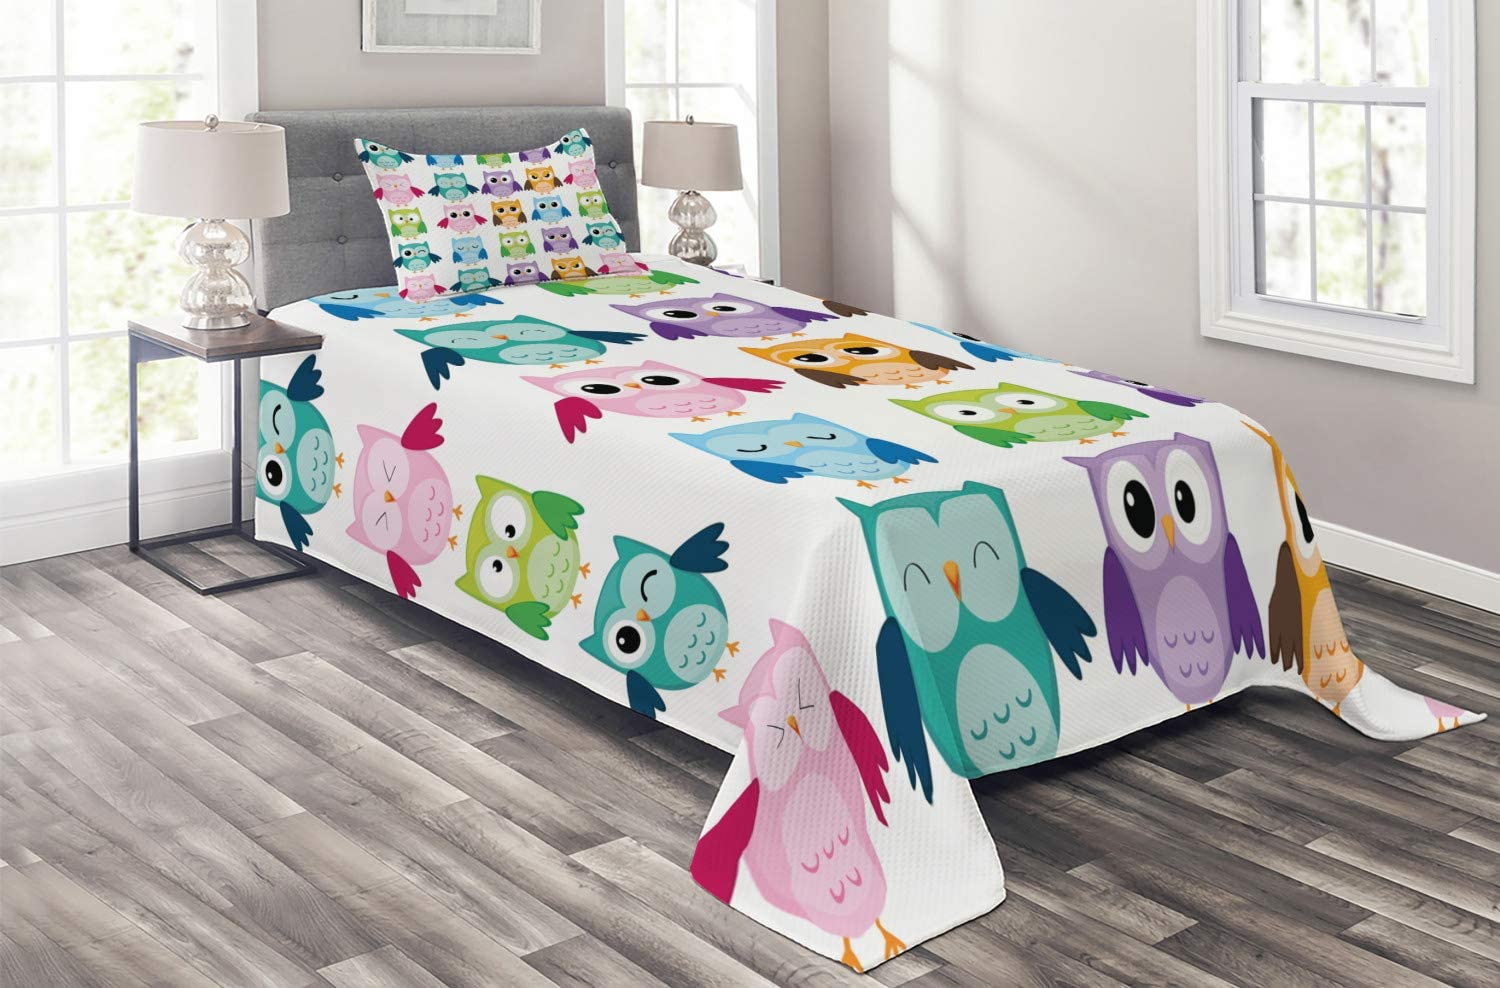 Ambesonne Nursery Coverlet At the price of surprise In a popularity Colorful Owl Pattern Friendly Birds